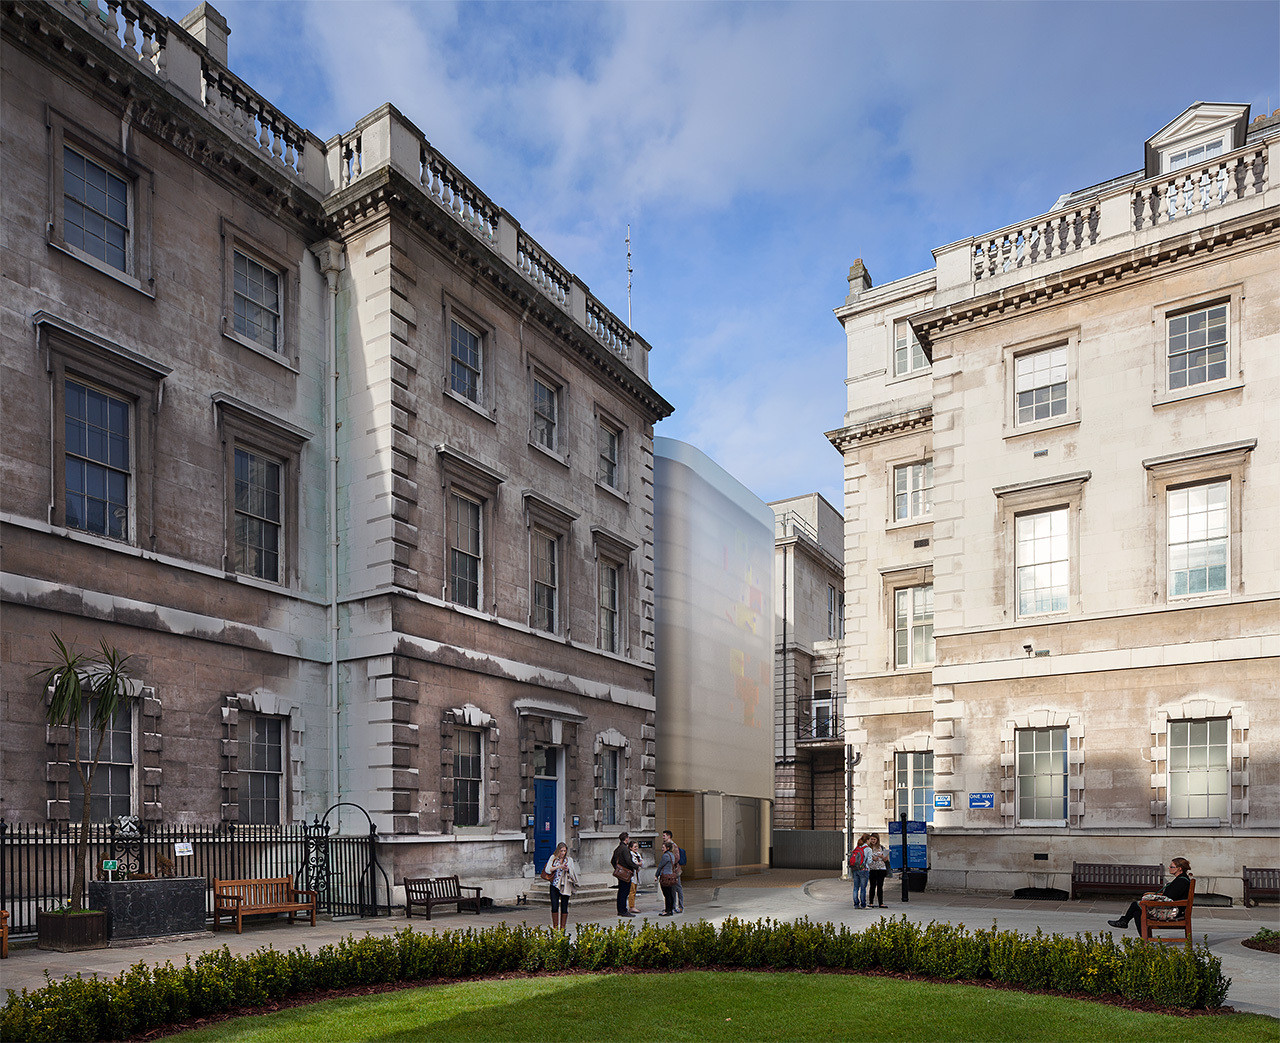 Hopkins Architects Maggie's Centre Gets Planning Permission Over Rival Holl Scheme, Steven Holl's Design. The Great Hall and Archive Building is on the left. Image Courtesy of Steven Holl Architects